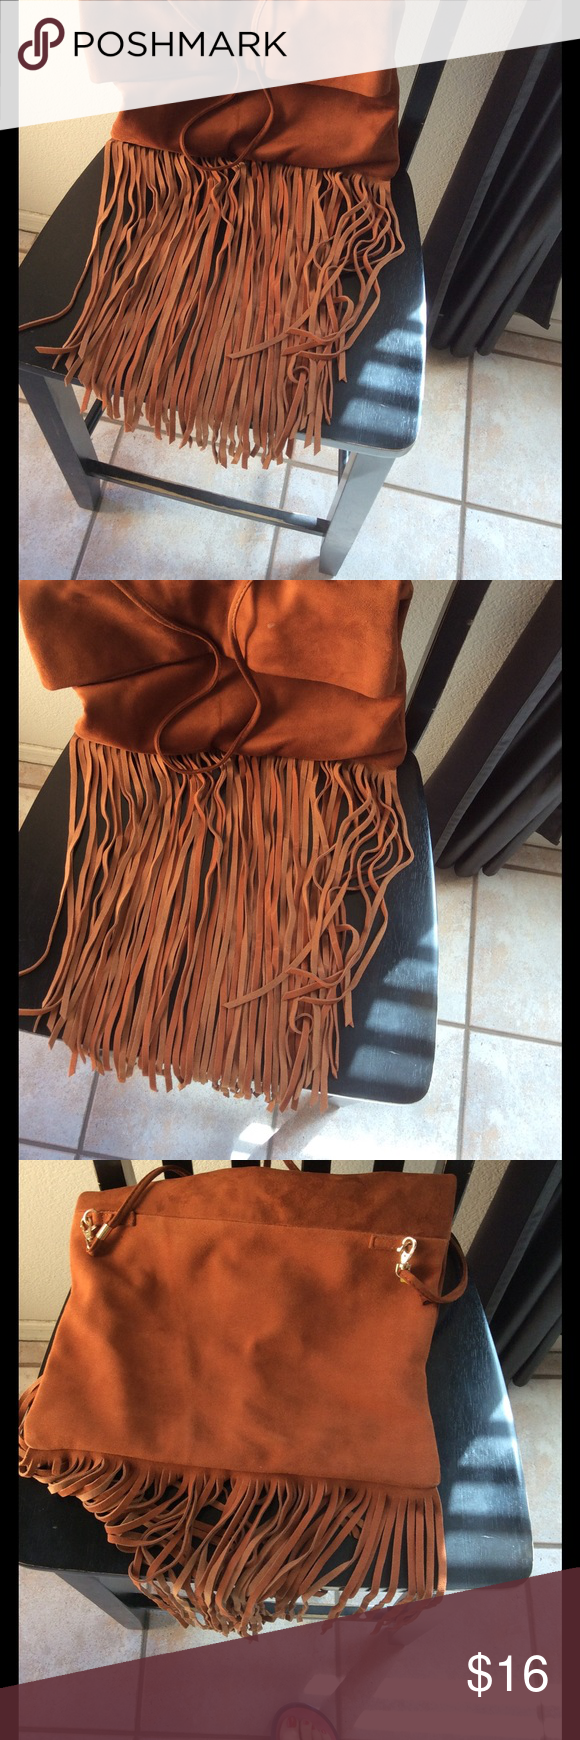 Sole Society vegan fringe crossbody fold over bag Sole Society vegan fringe crossbody fold over bag, faux leather/suede. Fully lined very good condition Sole Society Bags Crossbody Bags